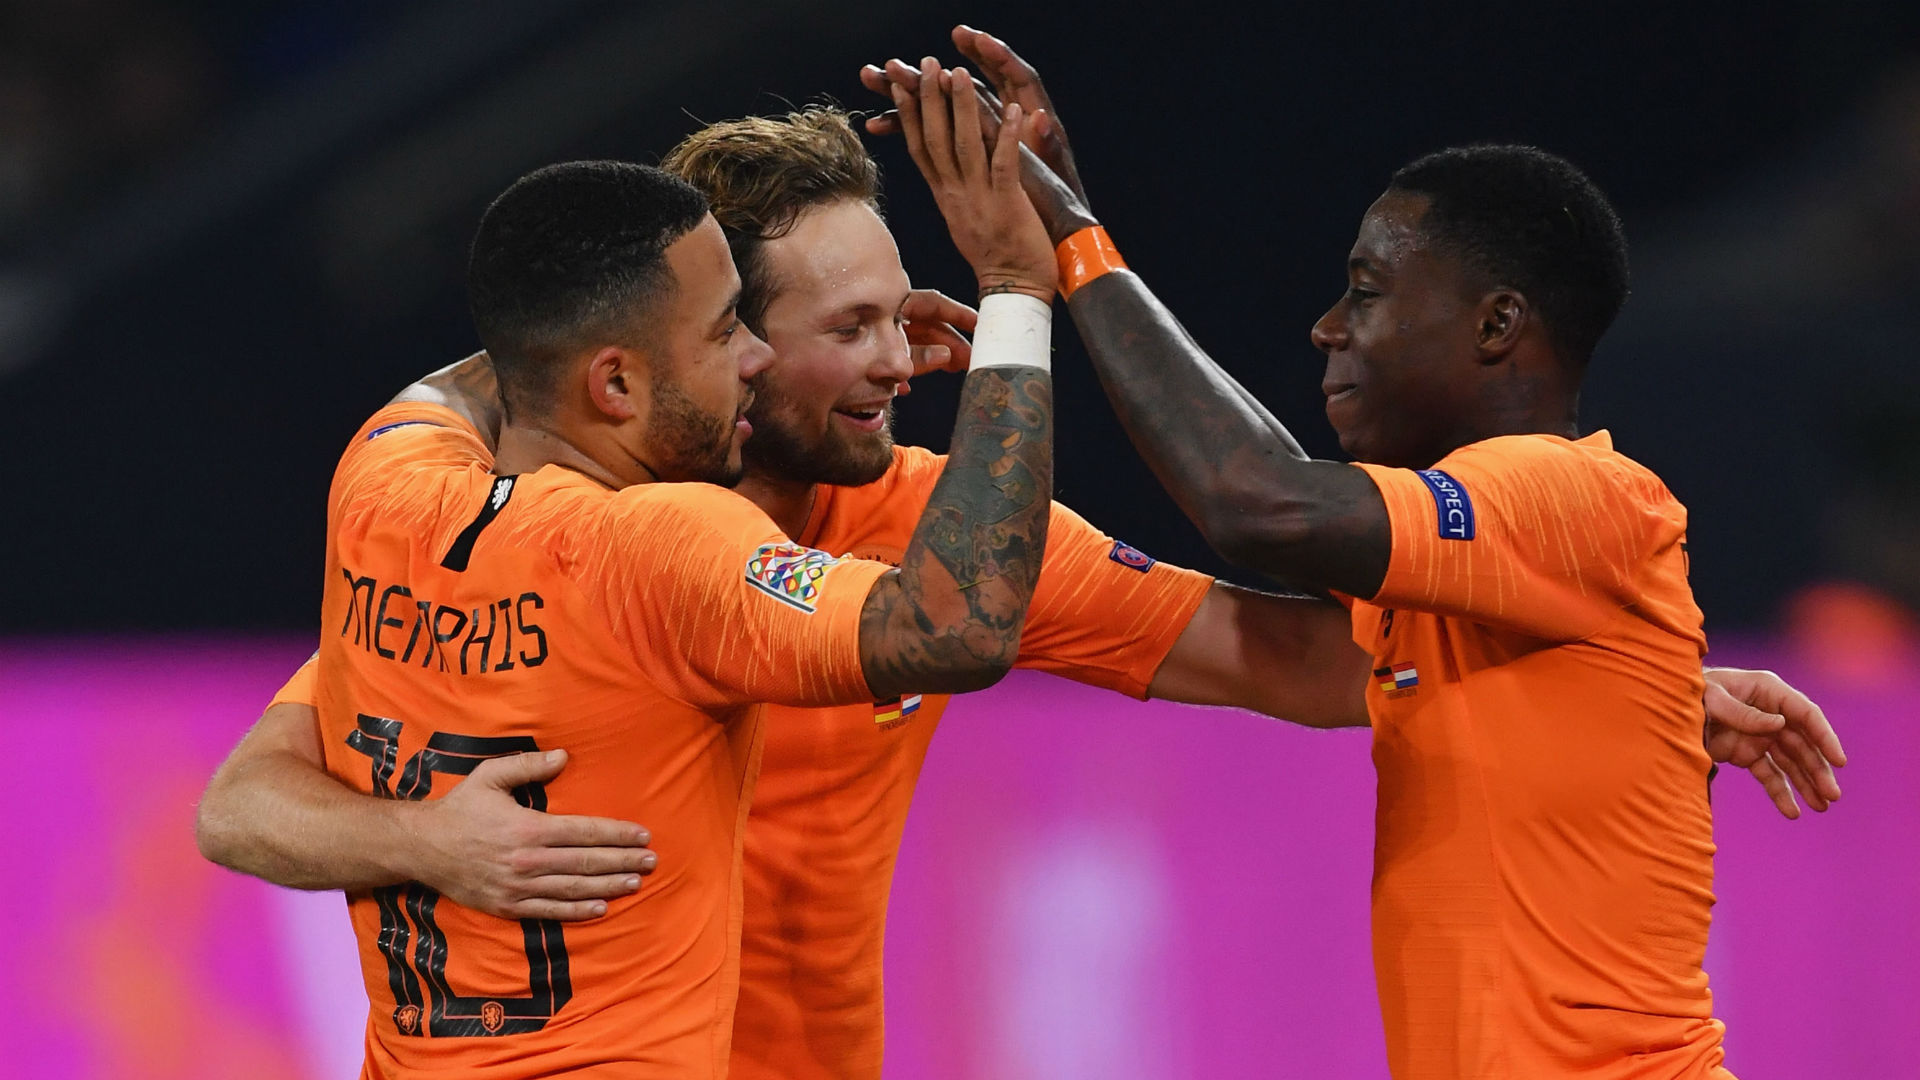 Netherlands 4 Belarus 0: Depay inspires winning start to Euro 2020 qualifiers